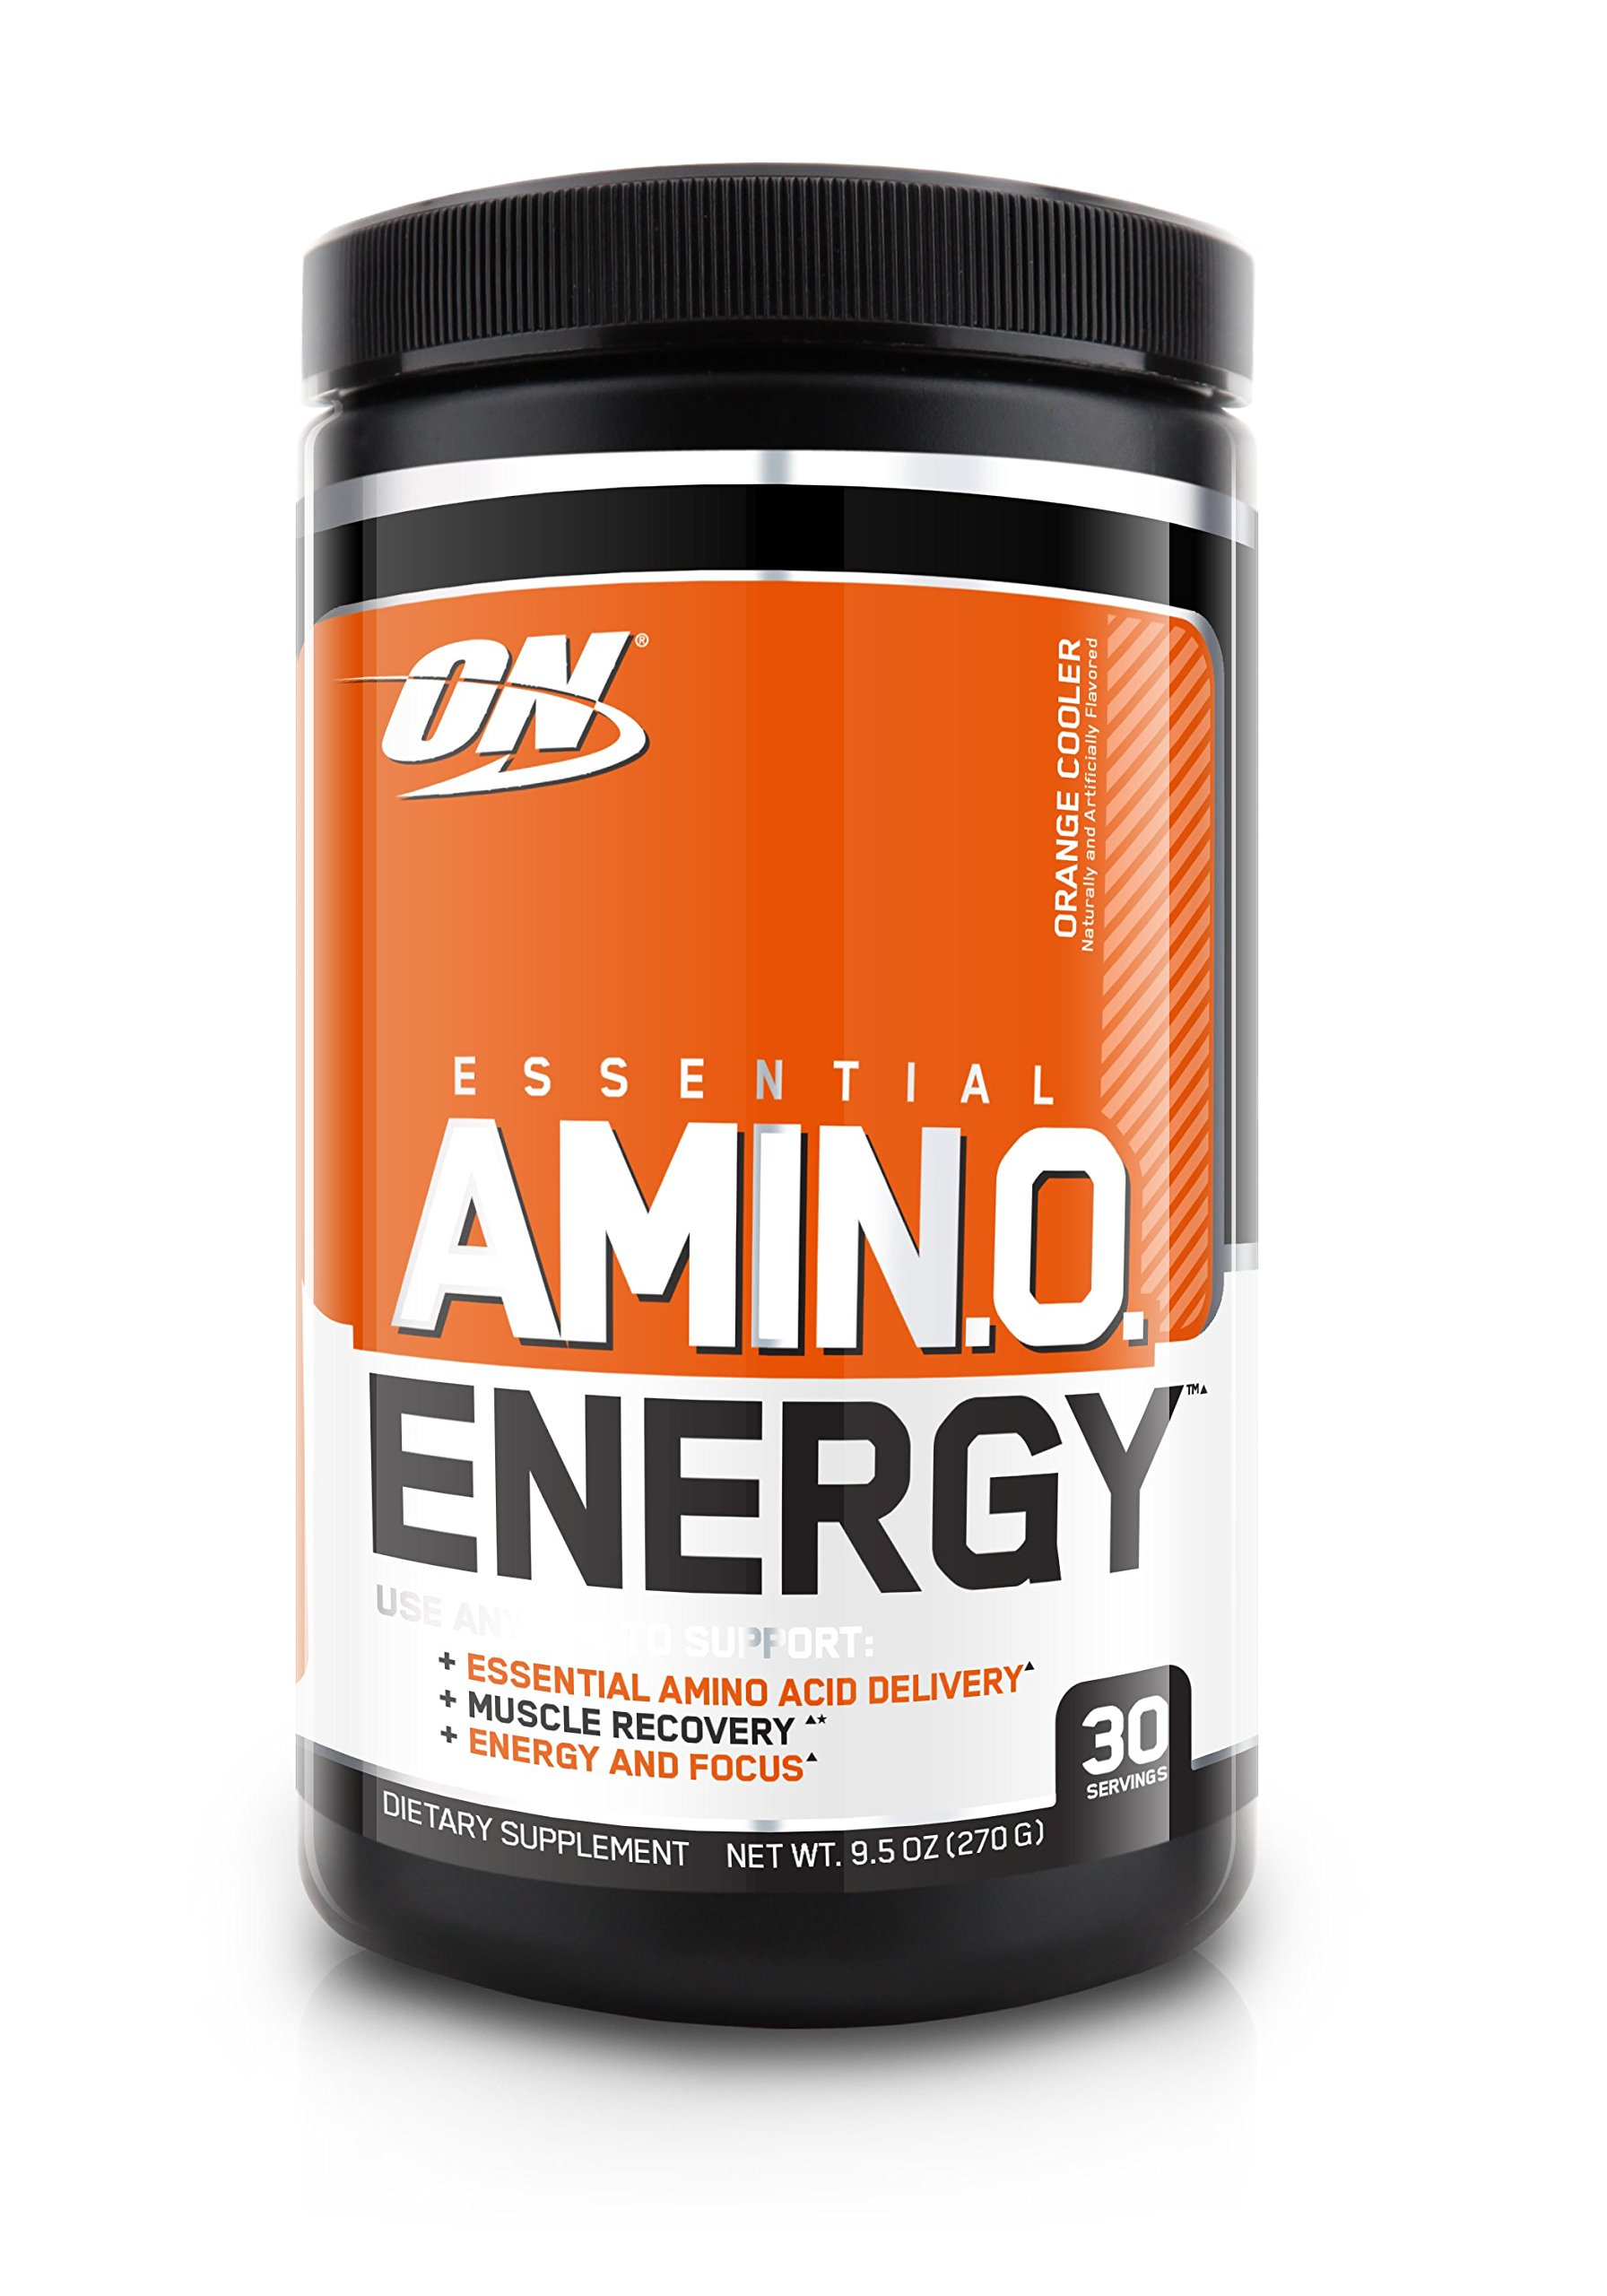 Optimum Nutrition Amino Energy, Orange Cooler, Preworkout and Essential Amino Acids with Green Tea and Green Coffee Extract, 30 Servings